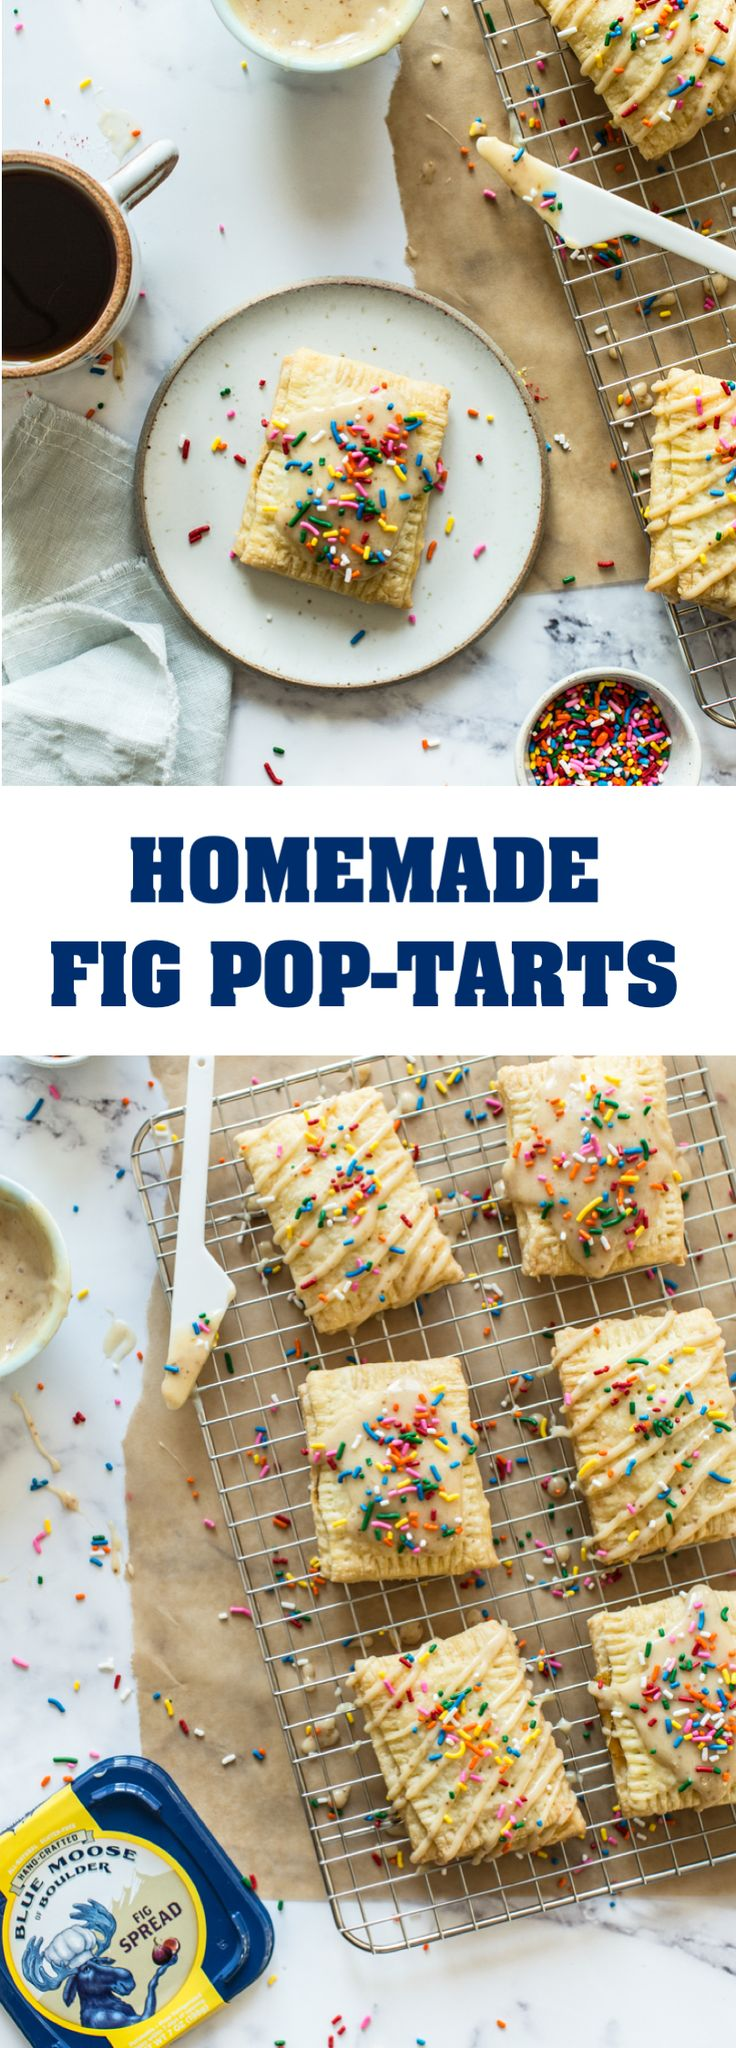 Homemade Fig Pop-Tarts | There's nothing better than a freshly baked treat at breakfast or brunch. These homemade pop-tarts combine perfectly flakey pie crust with a flavorful fig center and topped with Blue Moose of Boulder's deliciously creamy and naturally sweet Fig Spread. Don't forget the rainbow sprinkles! #BlueMooseOnTheLoose